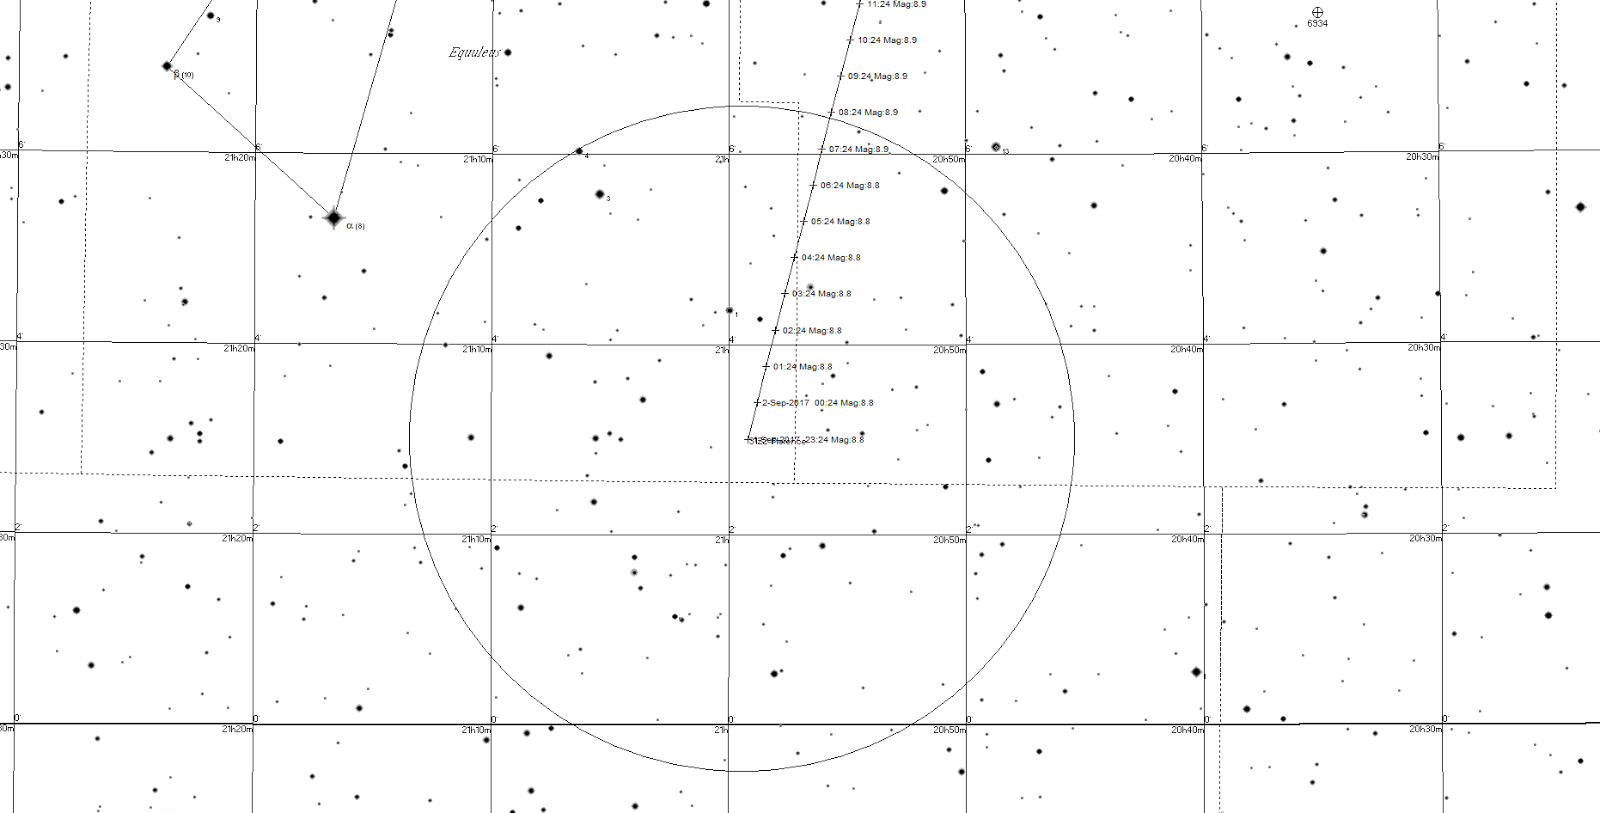 Printable black and white chart suitable for binoculars showing the track of 3122 florence from the 1st the large circle is the field of view of 10x50